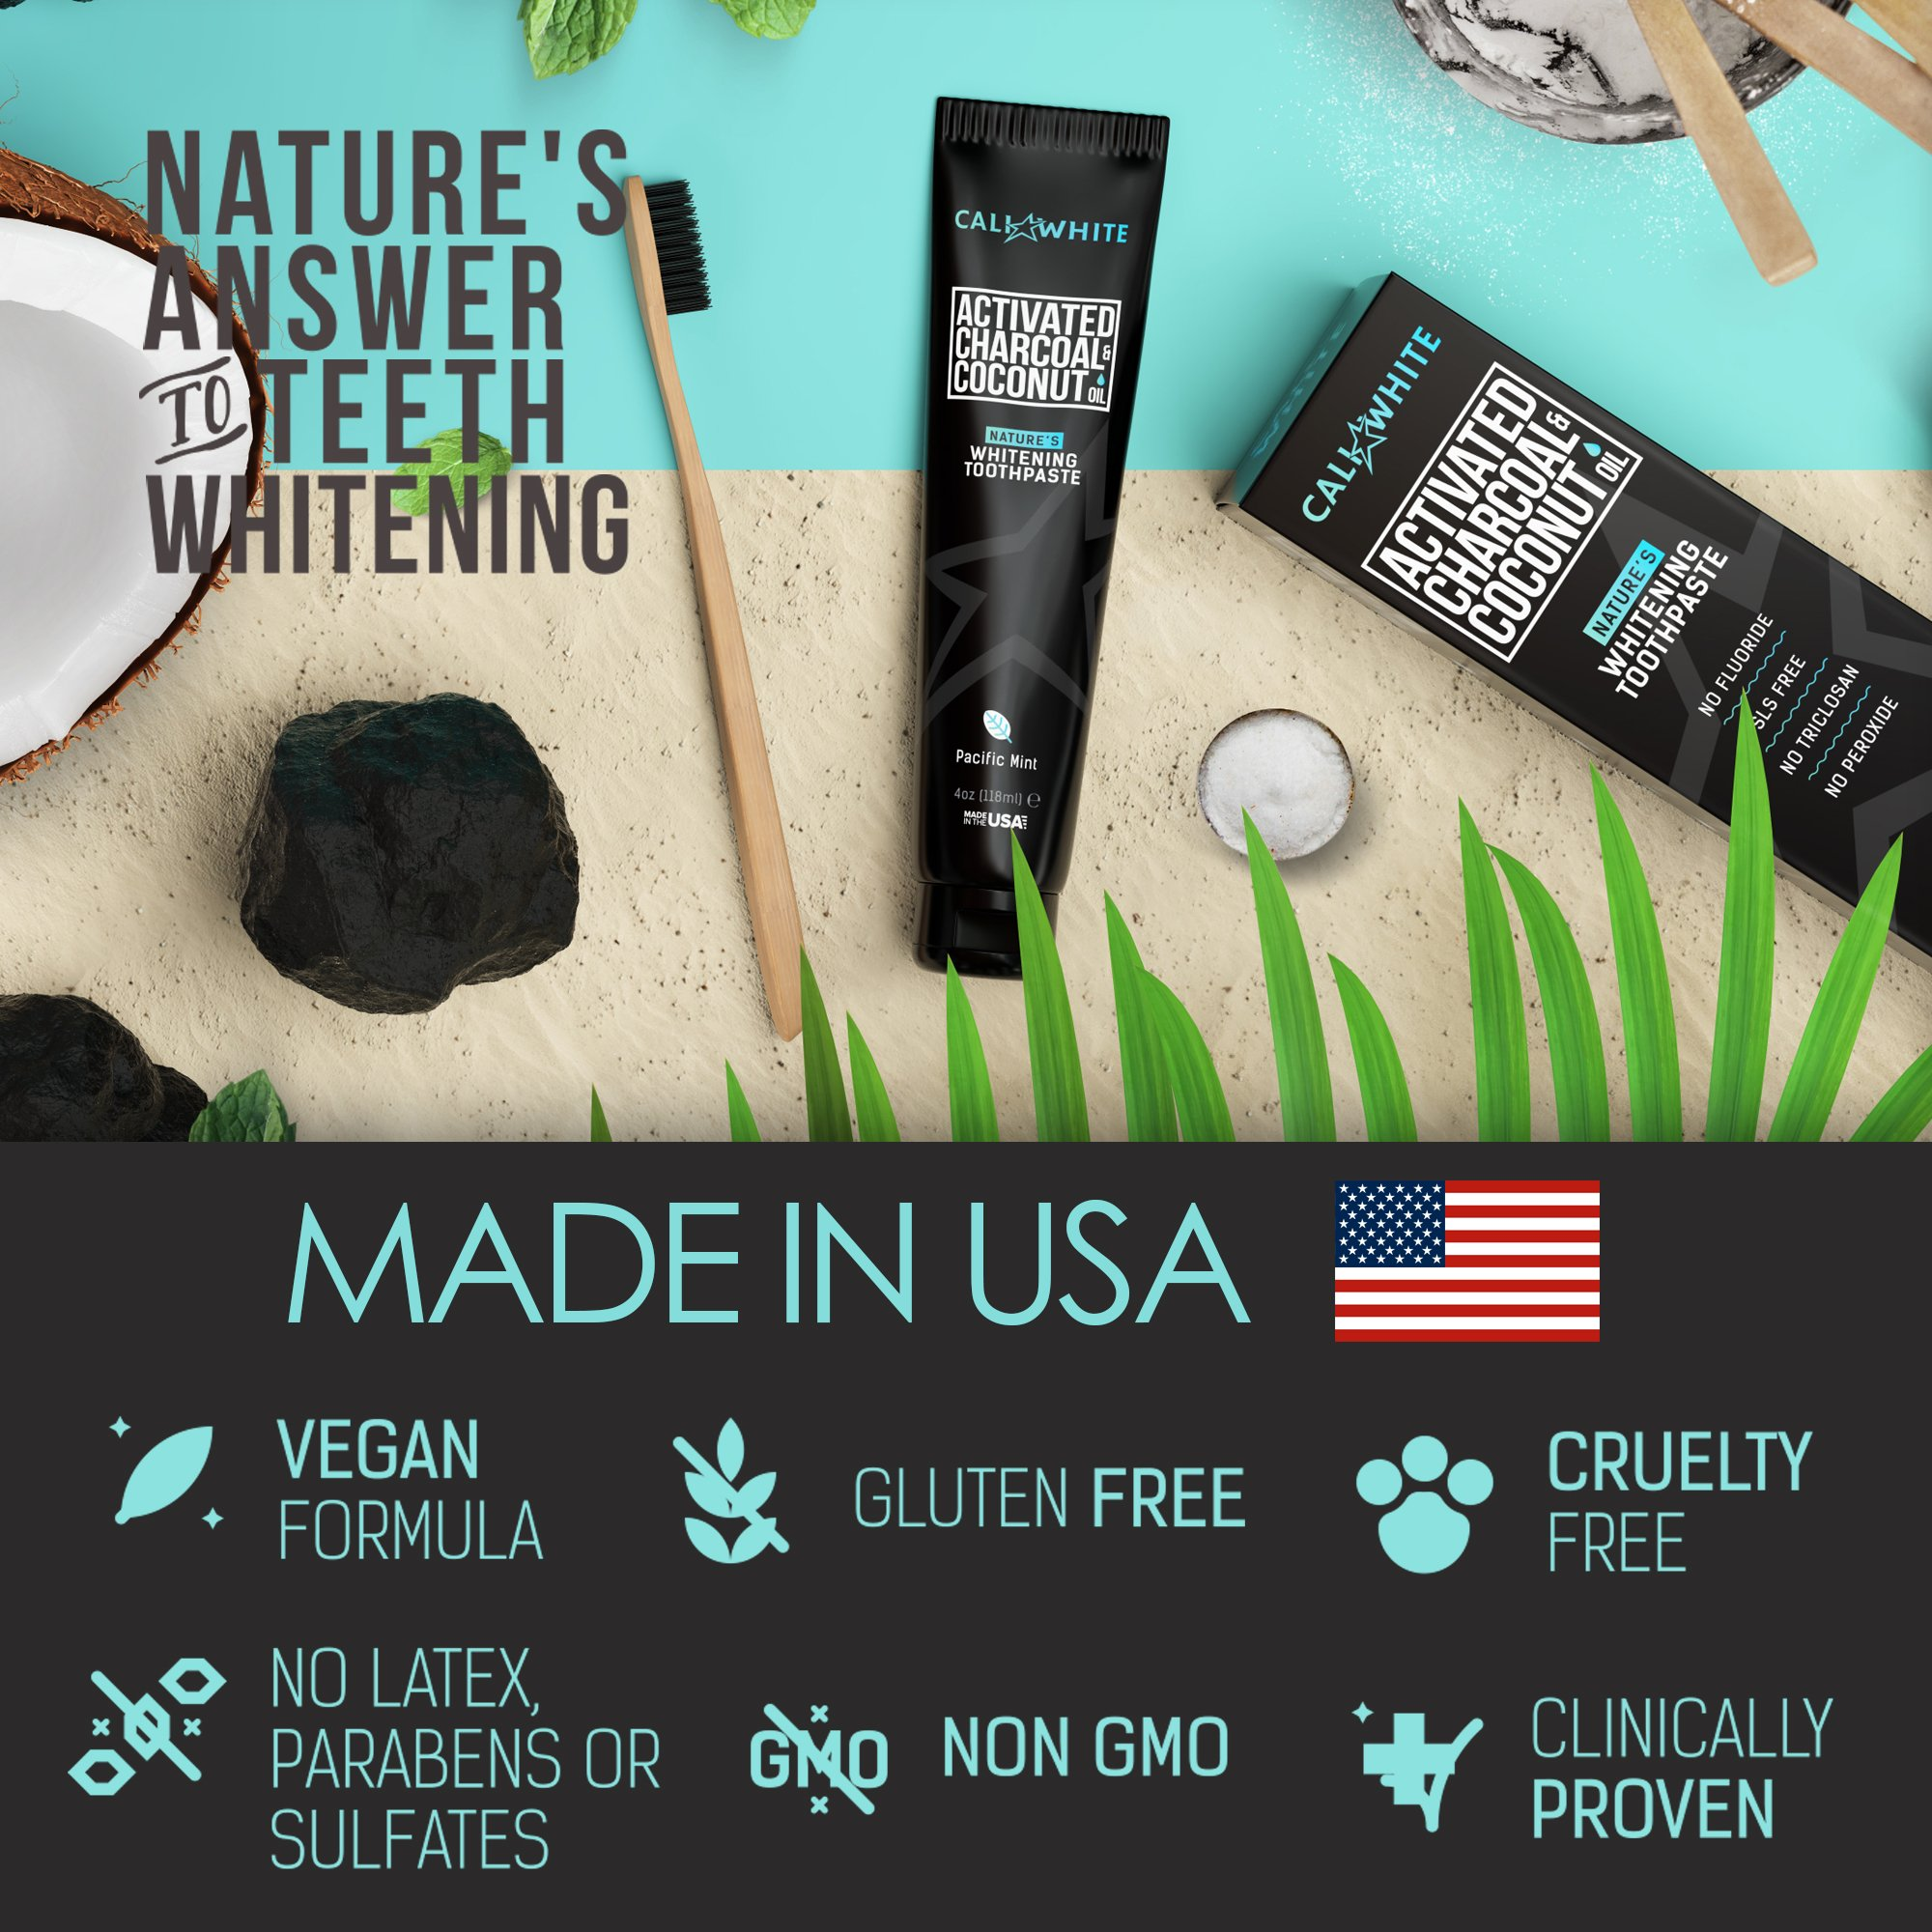 Cali White ACTIVATED CHARCOAL & ORGANIC COCONUT OIL TEETH WHITENING TOOTHPASTE, MADE IN USA, Best Natural Whitener, Vegan, Fluoride Free, Sulfate Free, Organic, Black Tooth Paste, Kids MINT (4oz) by Cali White (Image #2)